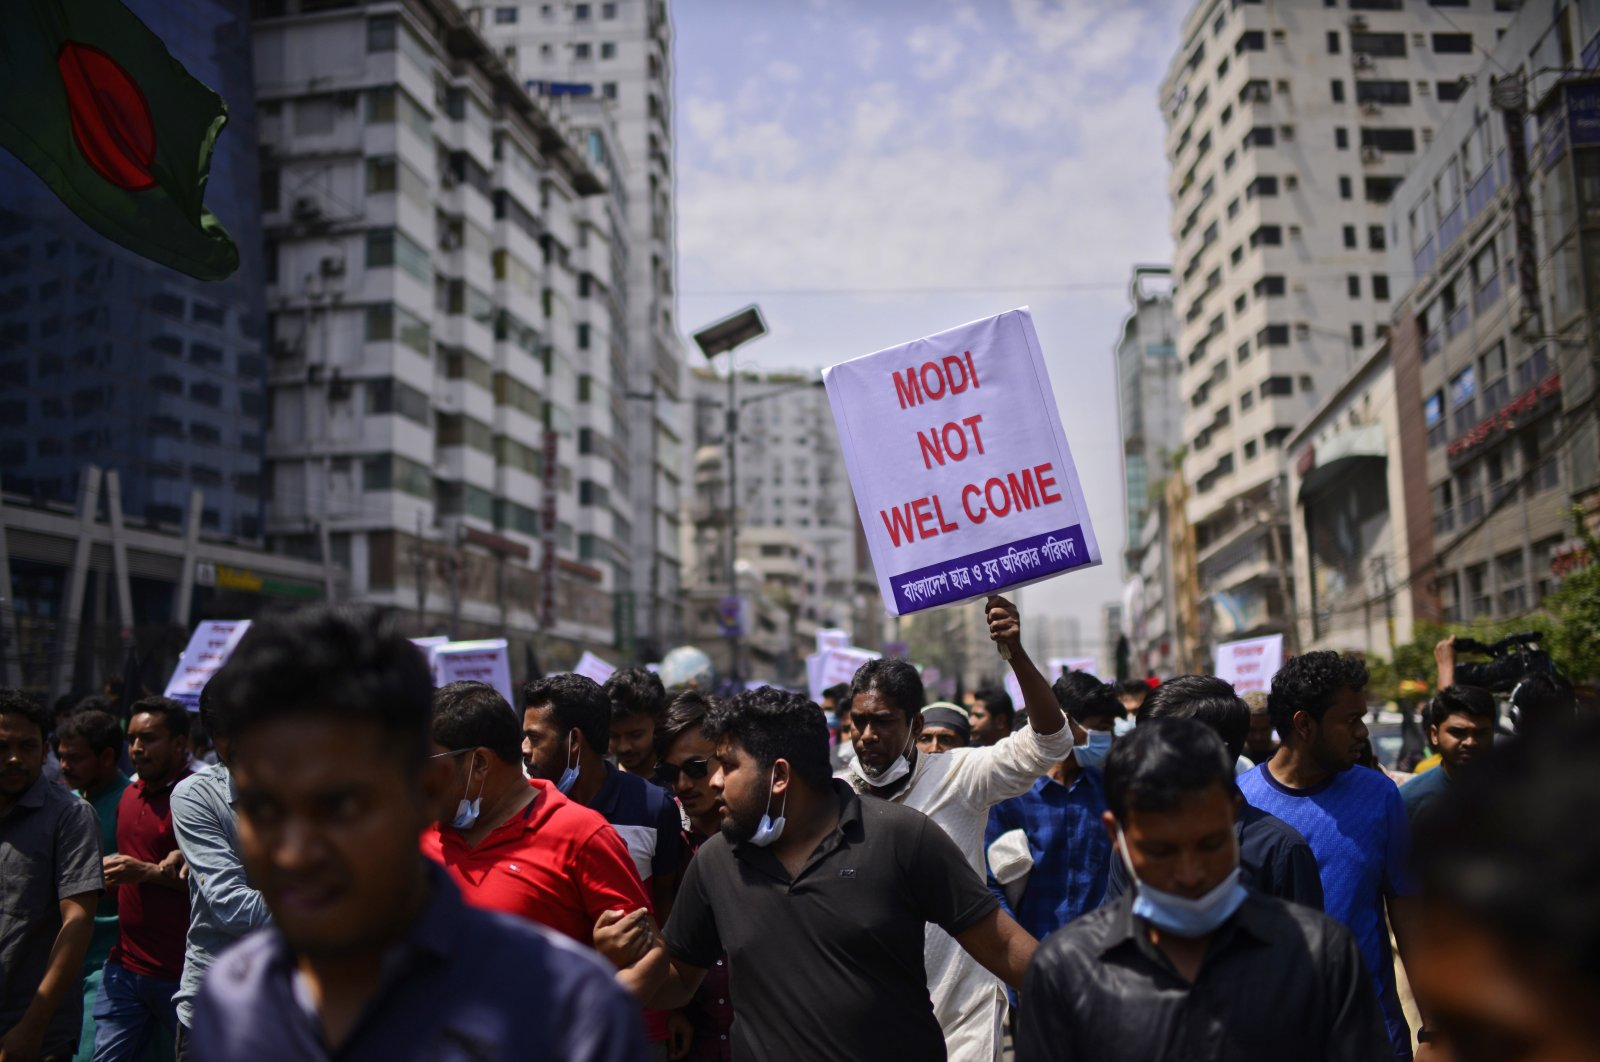 Bangladeshis shout slogans against the visit of Indian Prime Minister Narendra Modi in Dhaka, Bangladesh, March 25, 2021. (AP Photo)